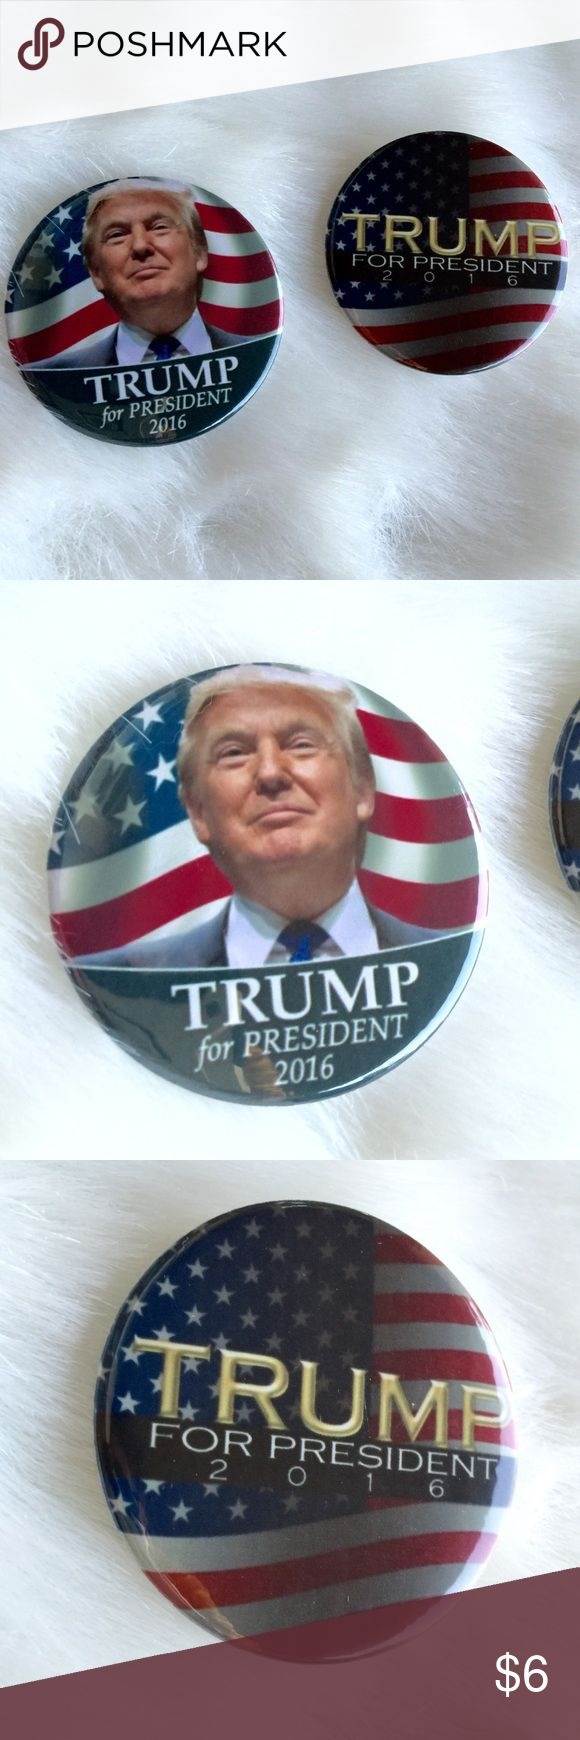 Set of 2 Trump Pins Brand new without tags. FYI: If you don't like Trump, so what?! This is NOT a political forum, I'm selling this hat, NOT an argument! Price is for both Jewelry Brooches